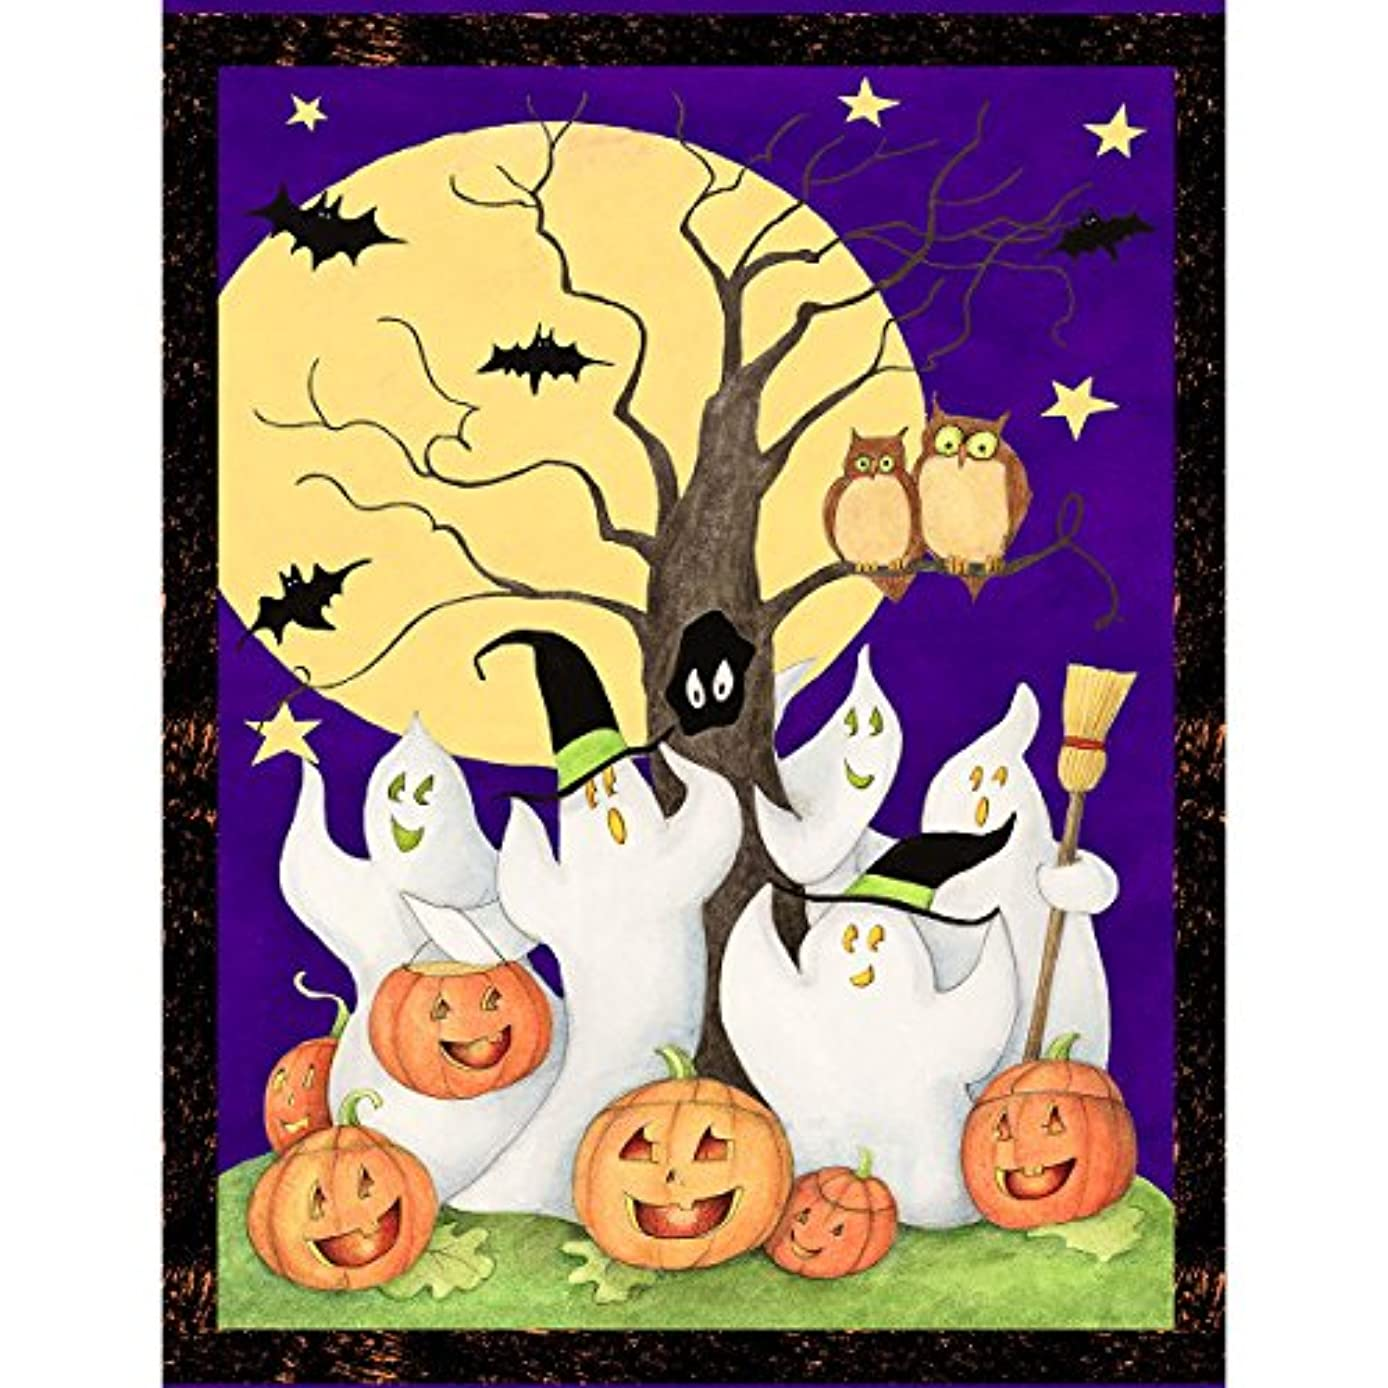 Springs Creative 100-Percent Cotton Ghost Story Wall Hanging, 43/44-Inch by 15-Yard, Multicolor